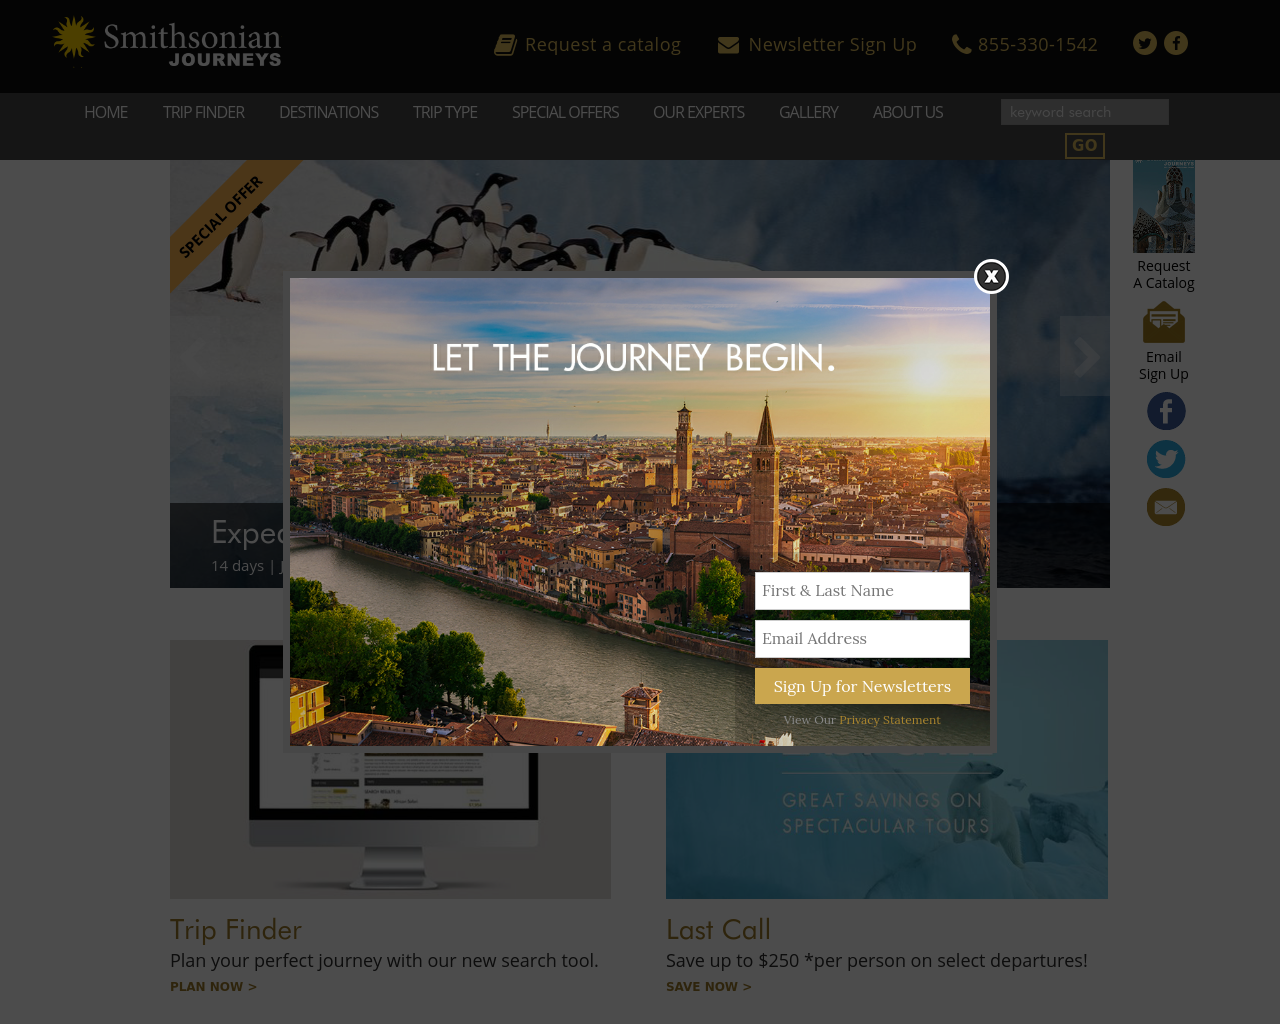 Smithsonian-Journeys-Advertising-Reviews-Pricing